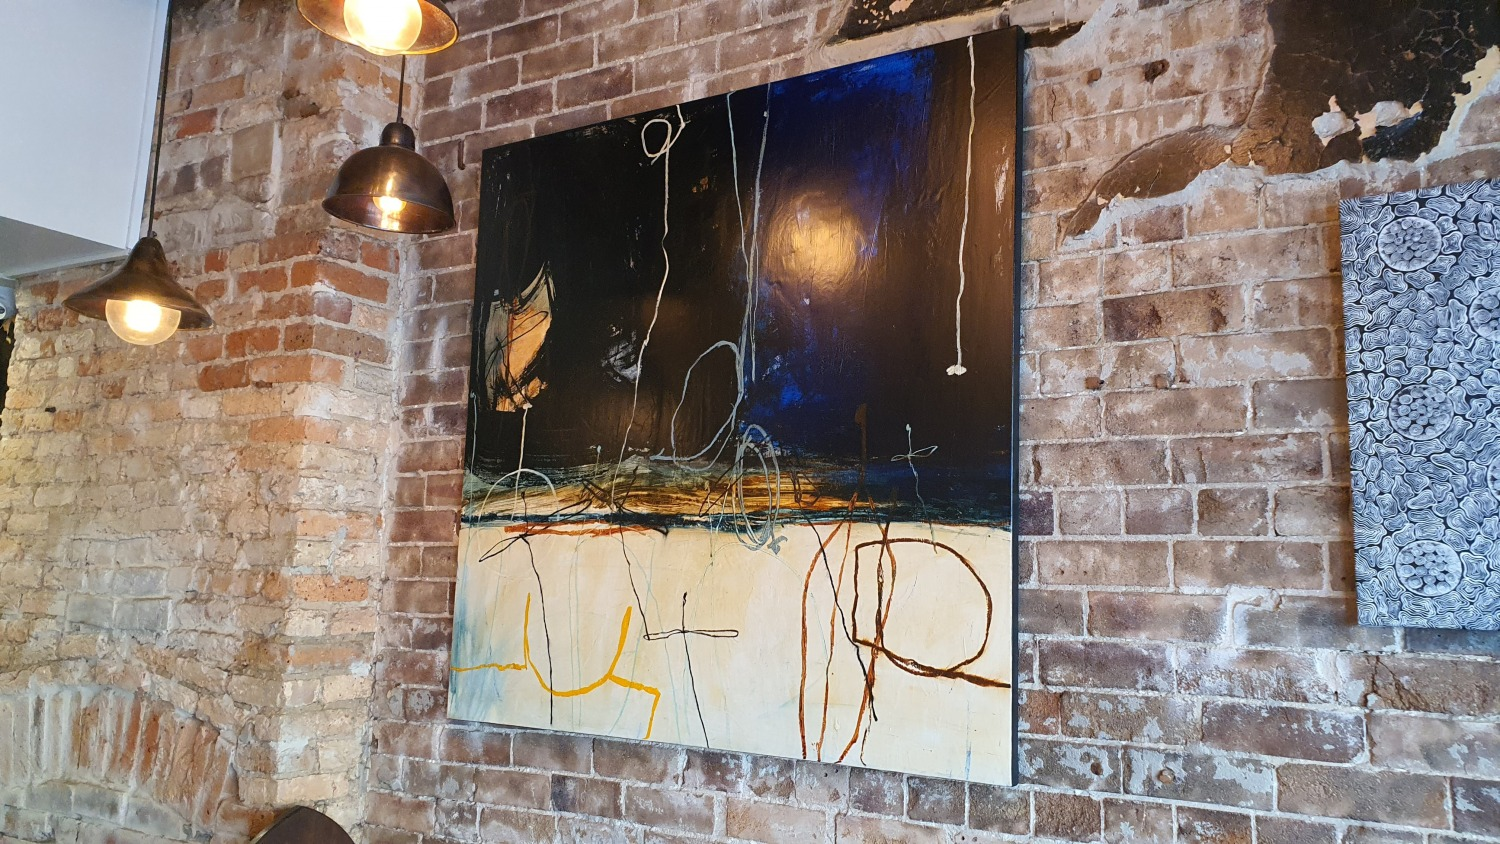 Black Star Pastry Newtown Cafes Bars Sydney Art Out Live (2)